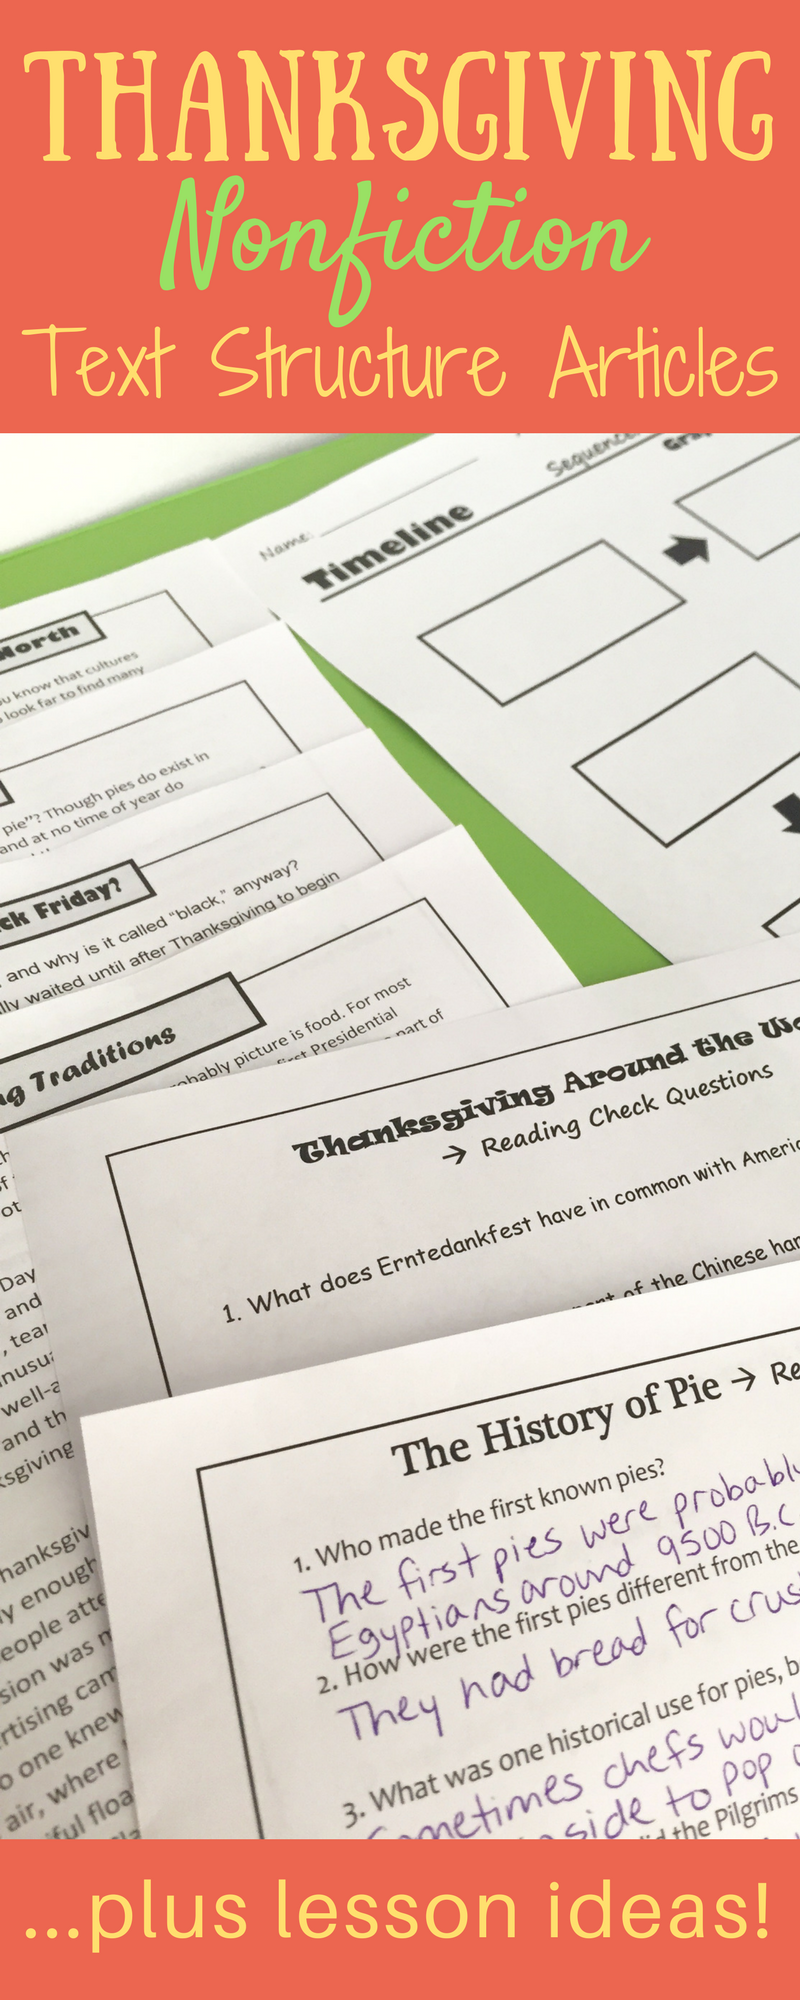 Workbooks thanksgiving reading comprehension worksheets middle school : Thanksgiving Nonfiction Text Structure Articles | Reading passages ...